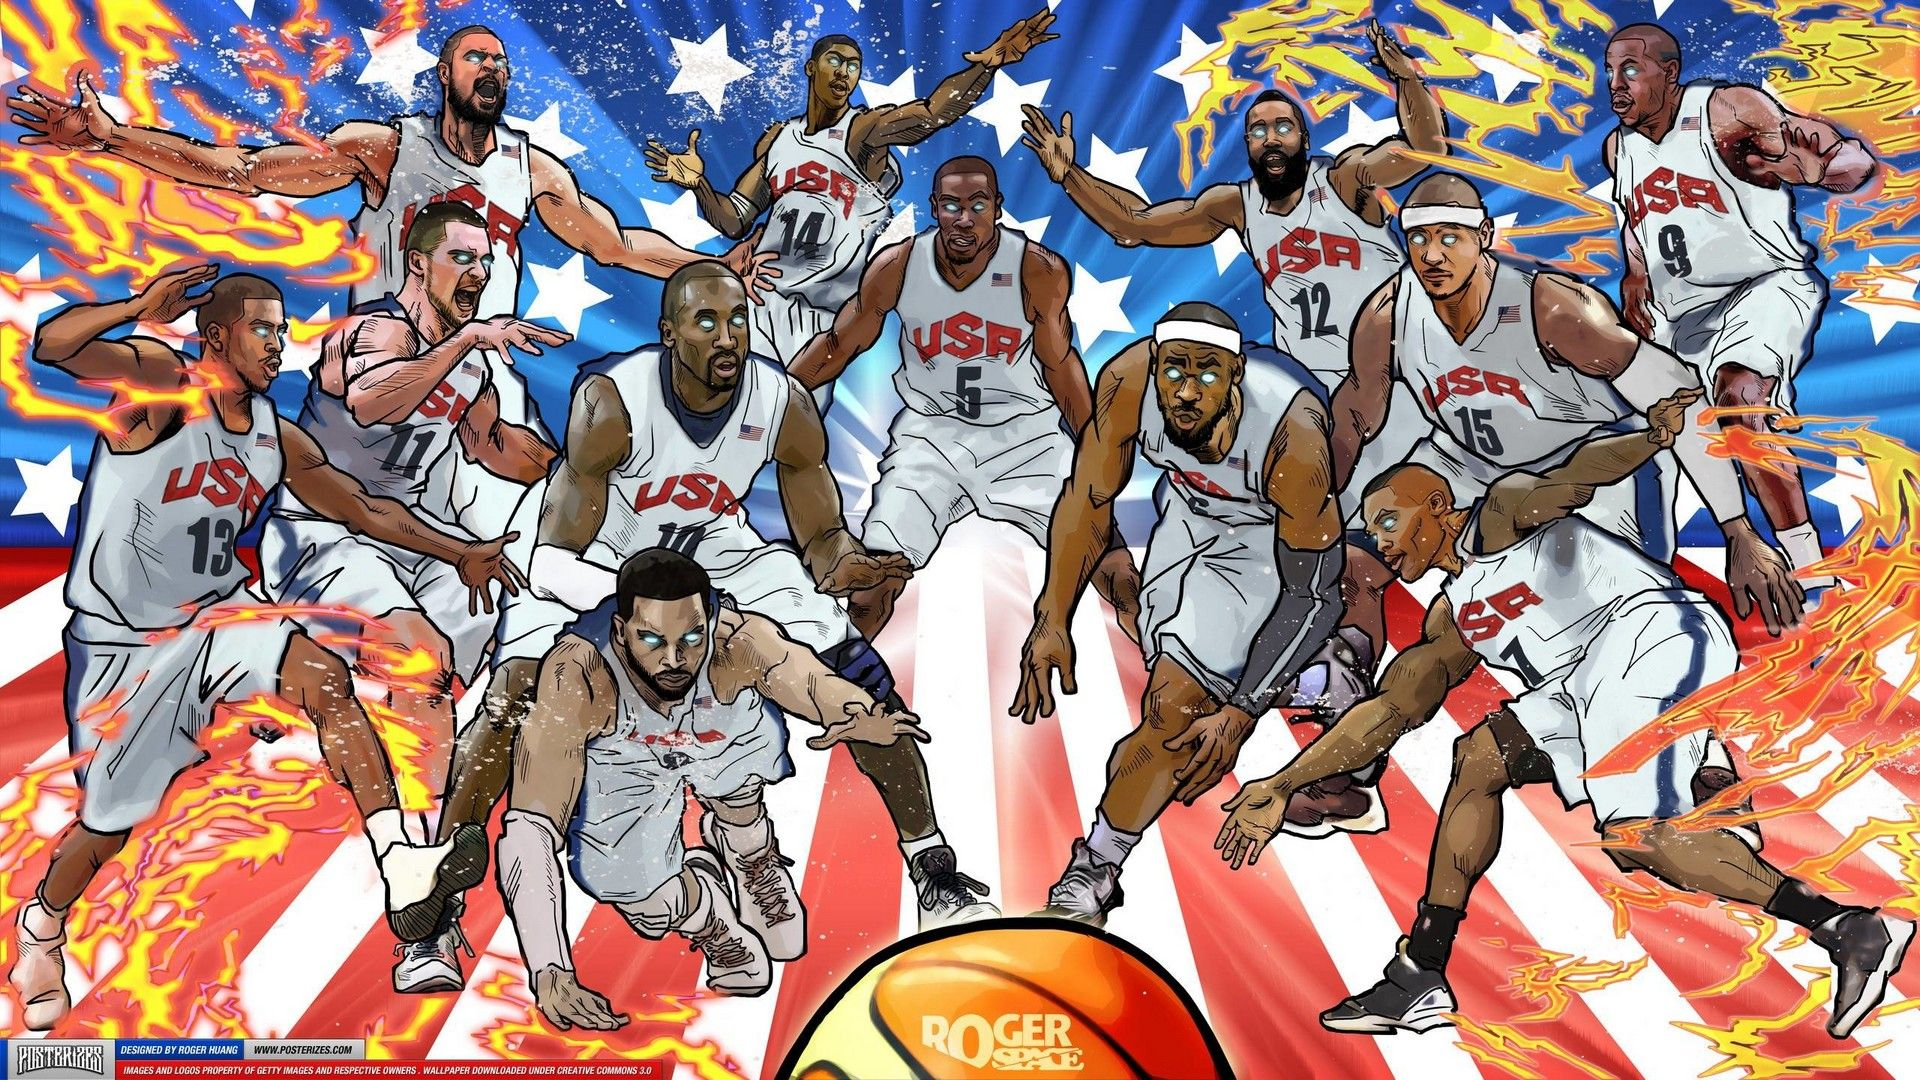 Nba Desktop Wallpapers In 2020 Cartoon Wallpaper Nba Wallpapers Basketball Wallpaper